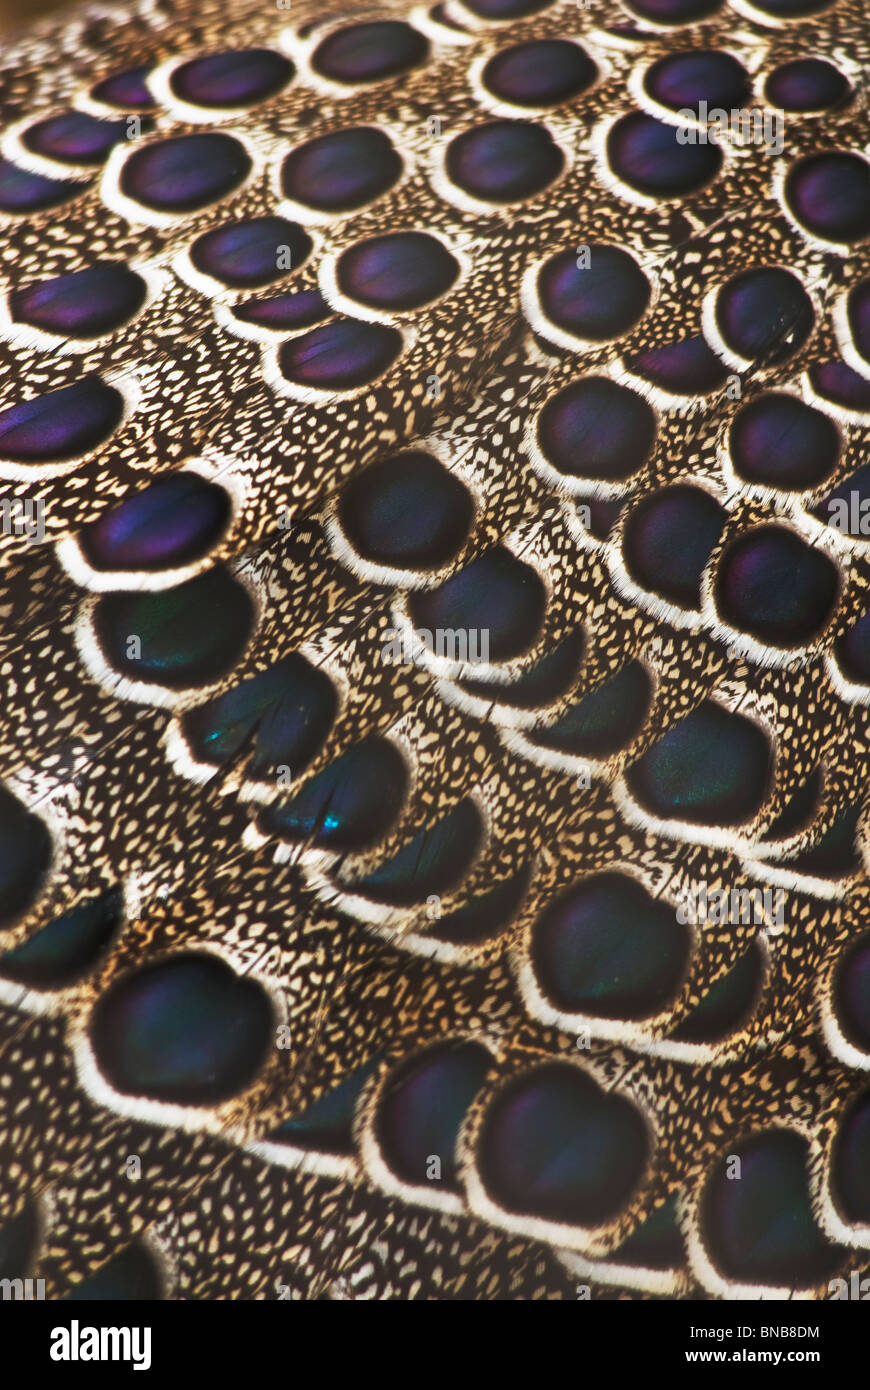 Aerial close-up of peacock feathers making an elaborate pattern of shapes. Kwazulu-Natal, South Africa - Stock Image